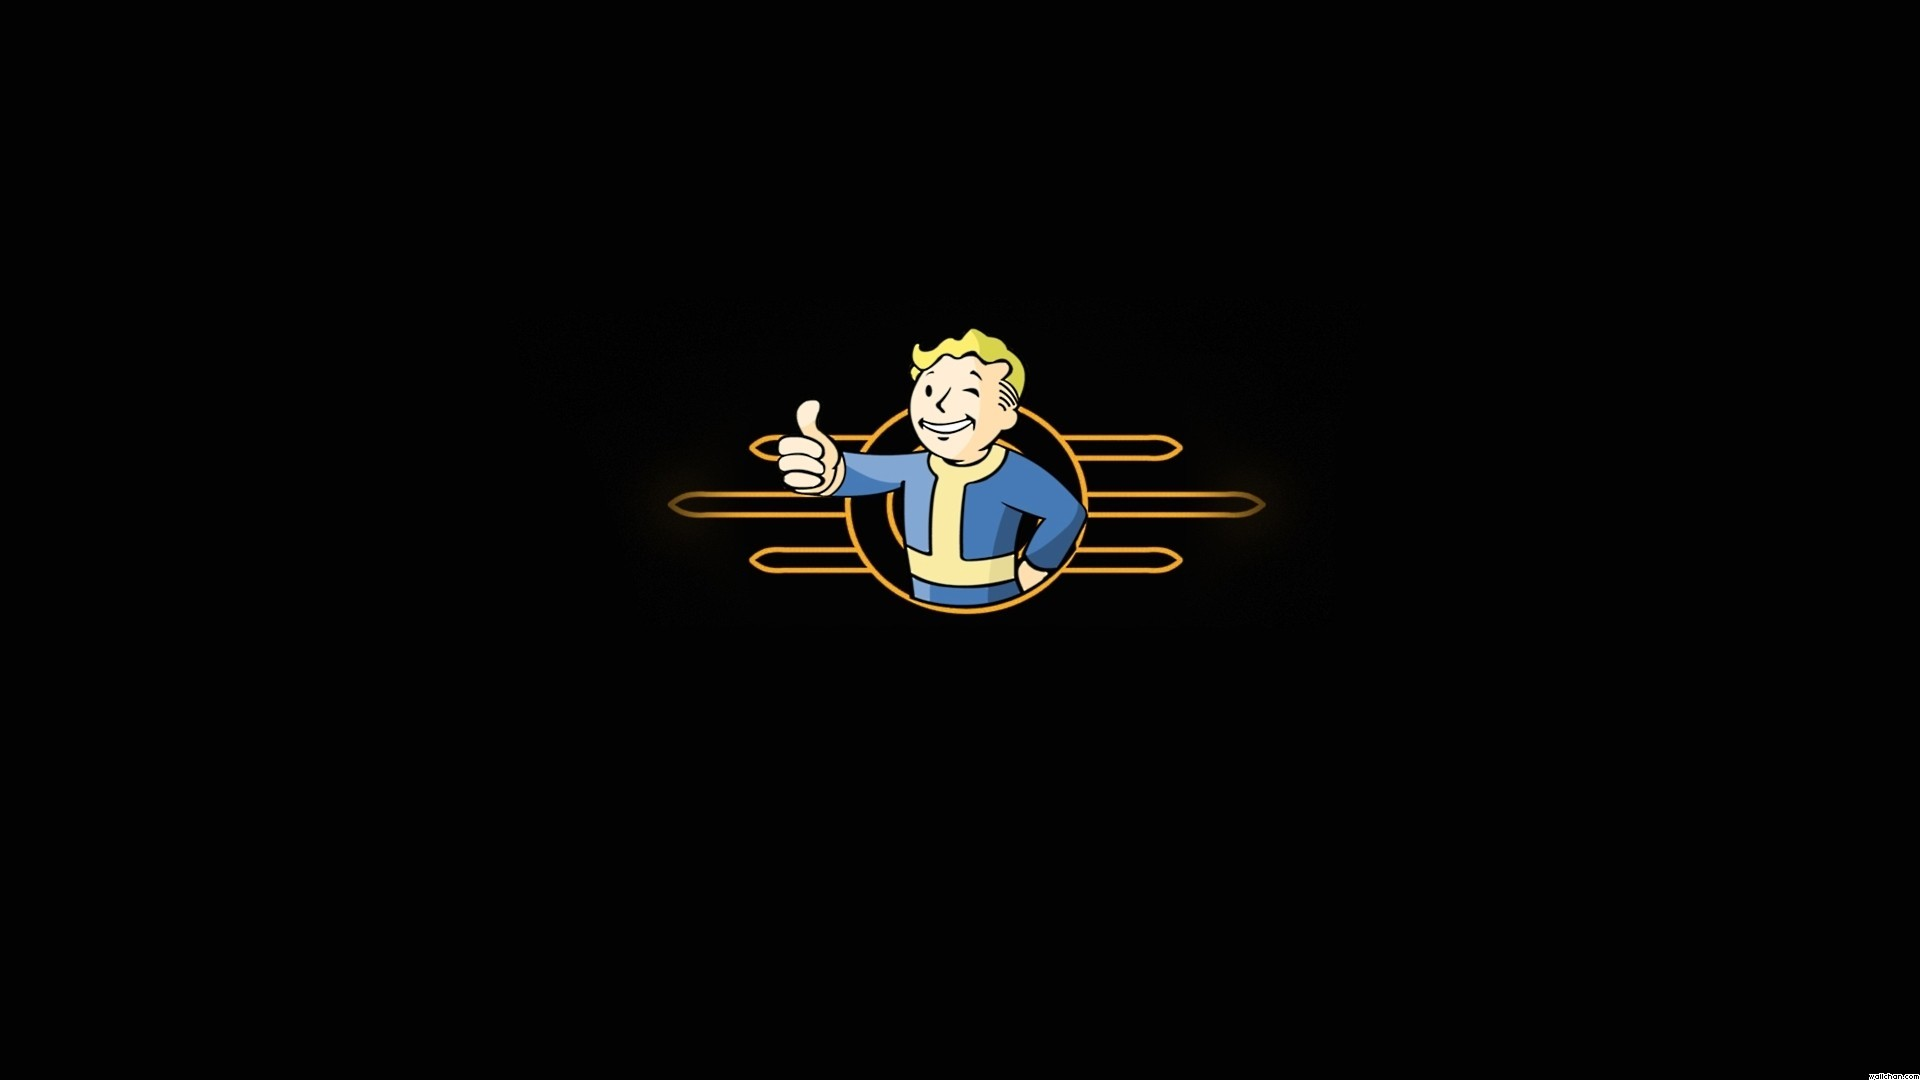 … fallout vault boy wallpapers hd desktop and mobile backgrounds …